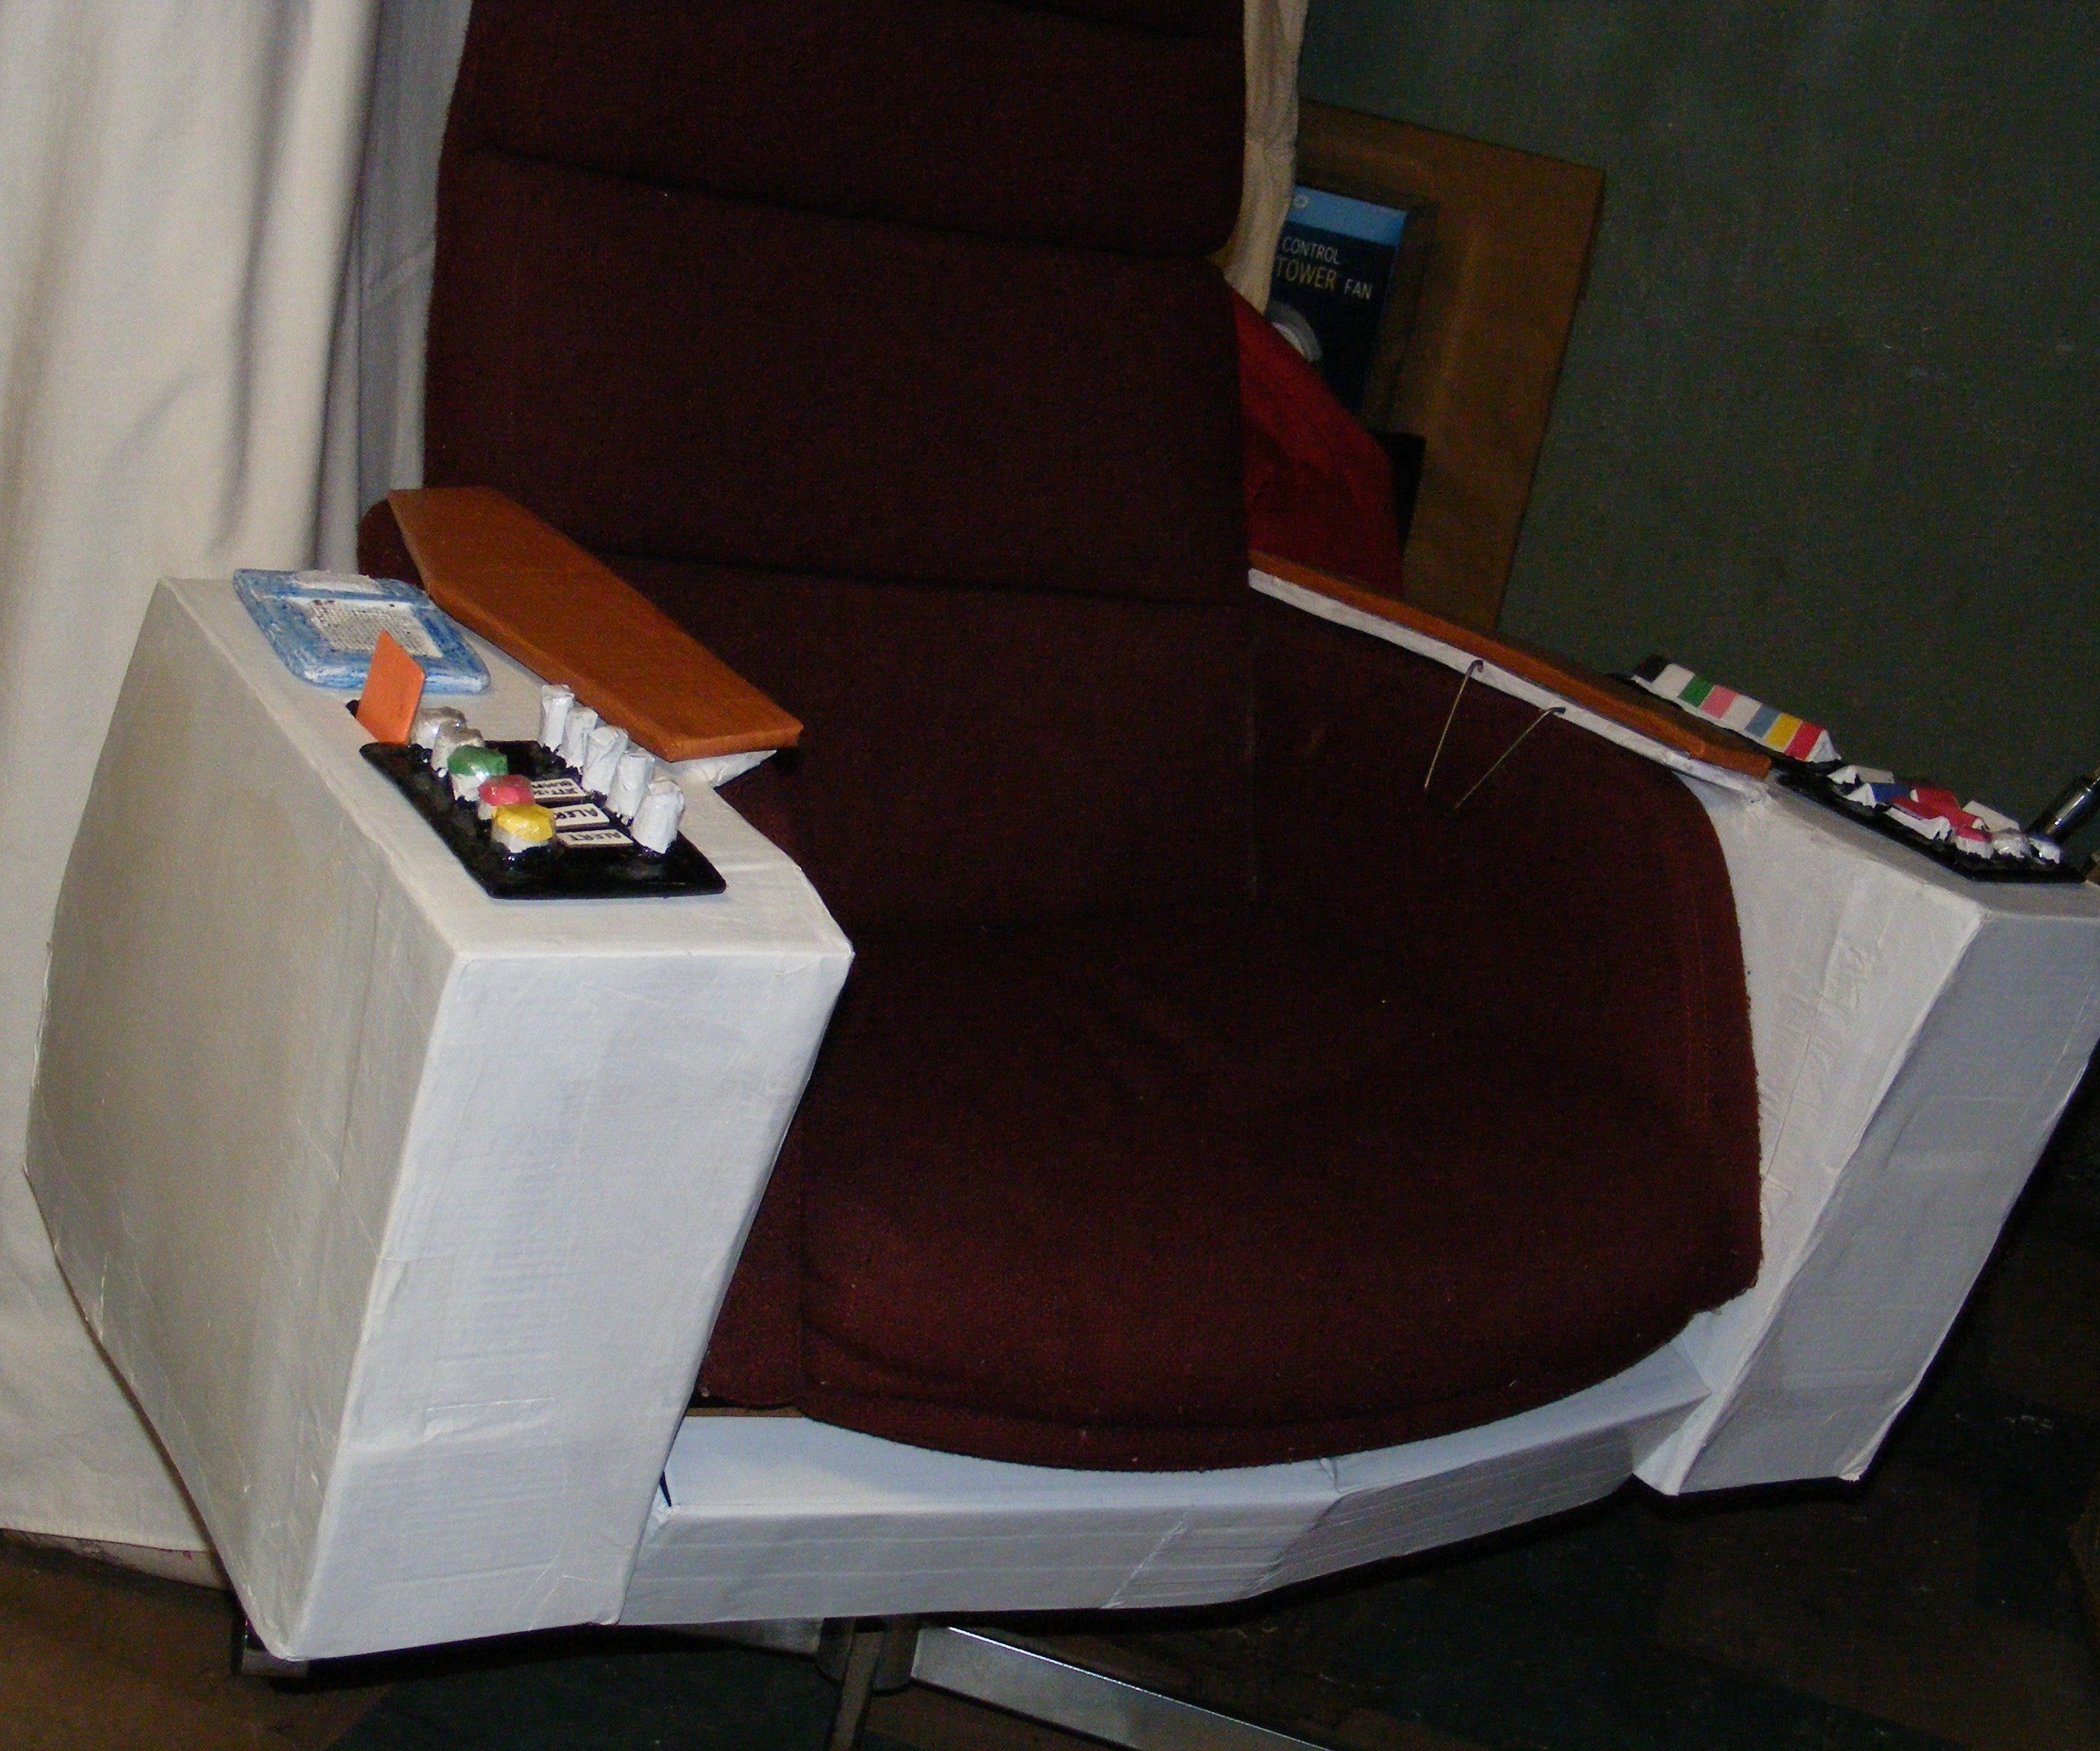 gmjhowe's Manager's Command and Control Seat of Righteousness (Captain Kirk's Chair)